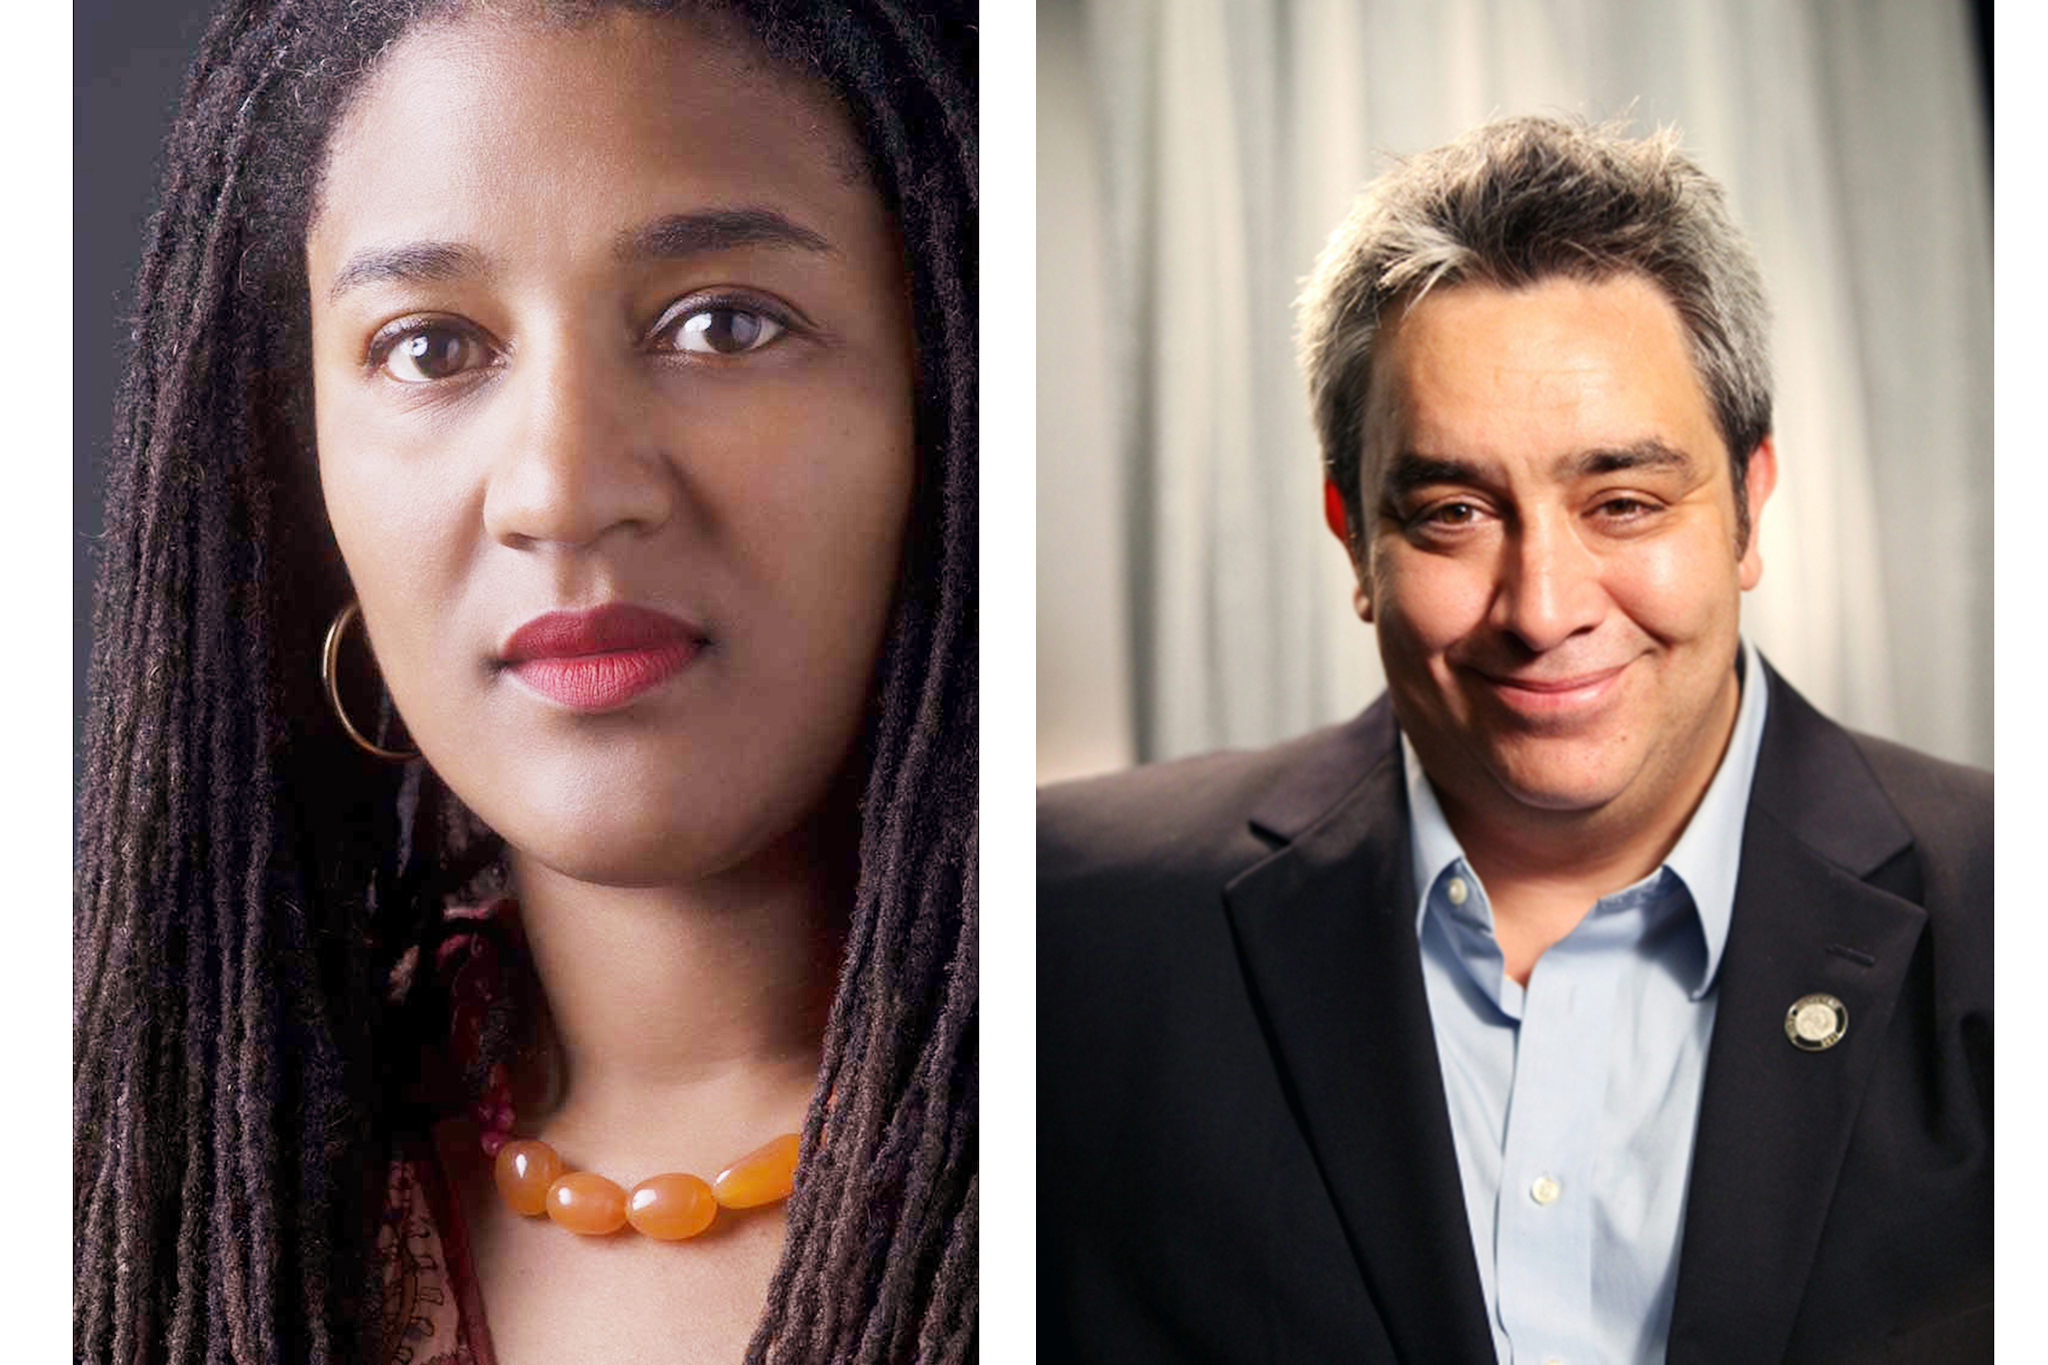 See Stephen Adly Guirgis and Lynn Nottage at the 92nd Street Y